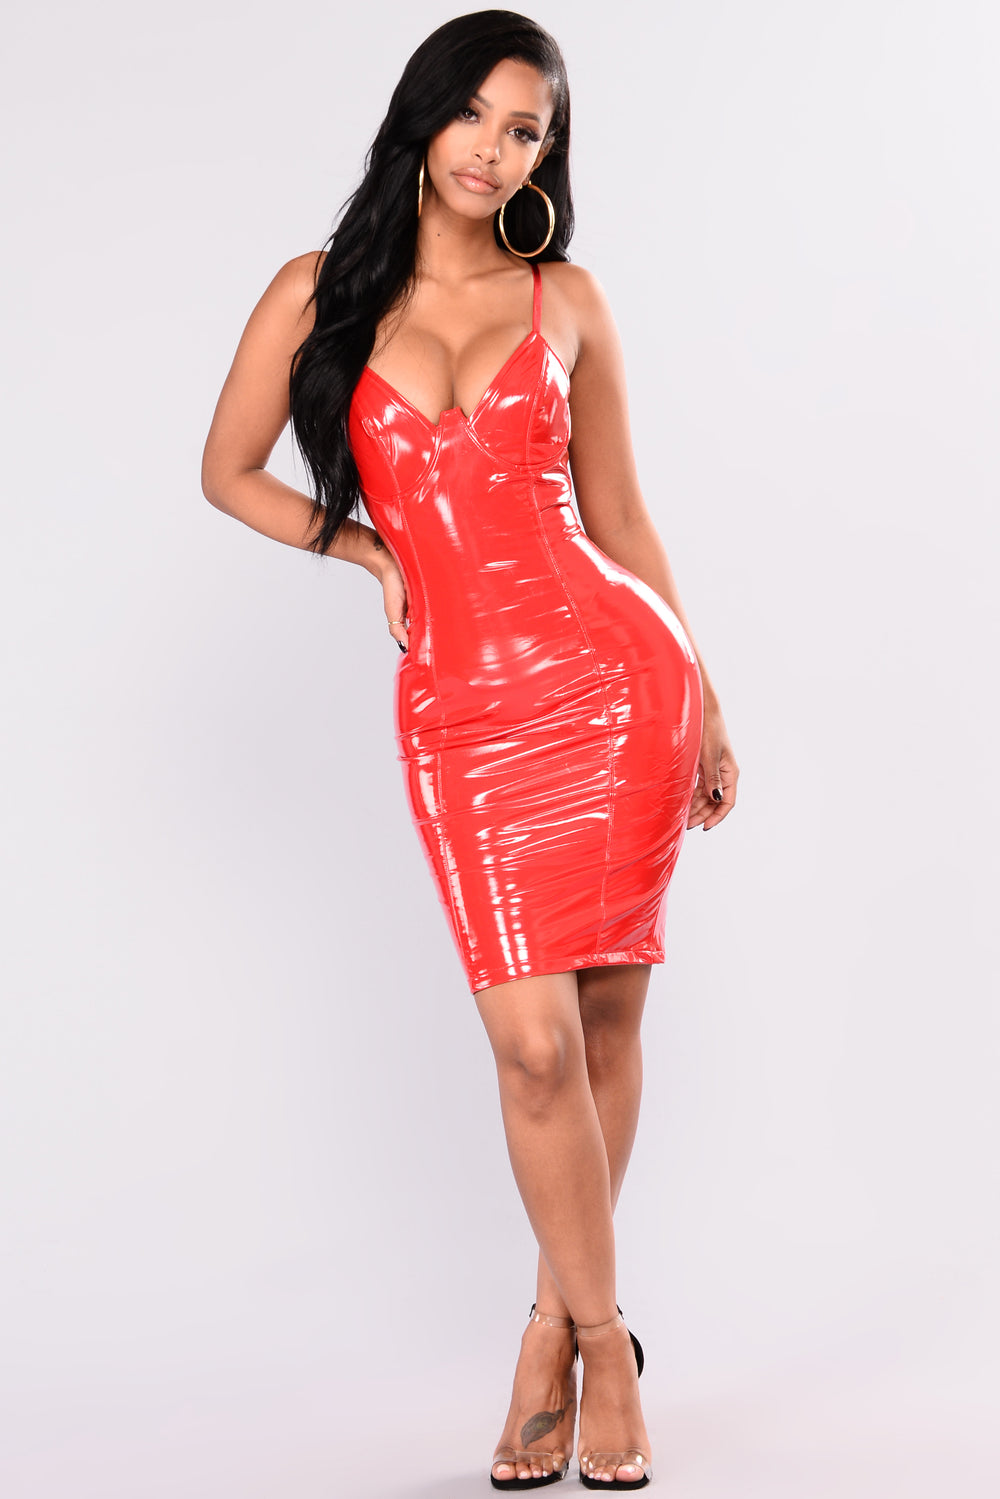 Self Portrait Latex Dress - Red